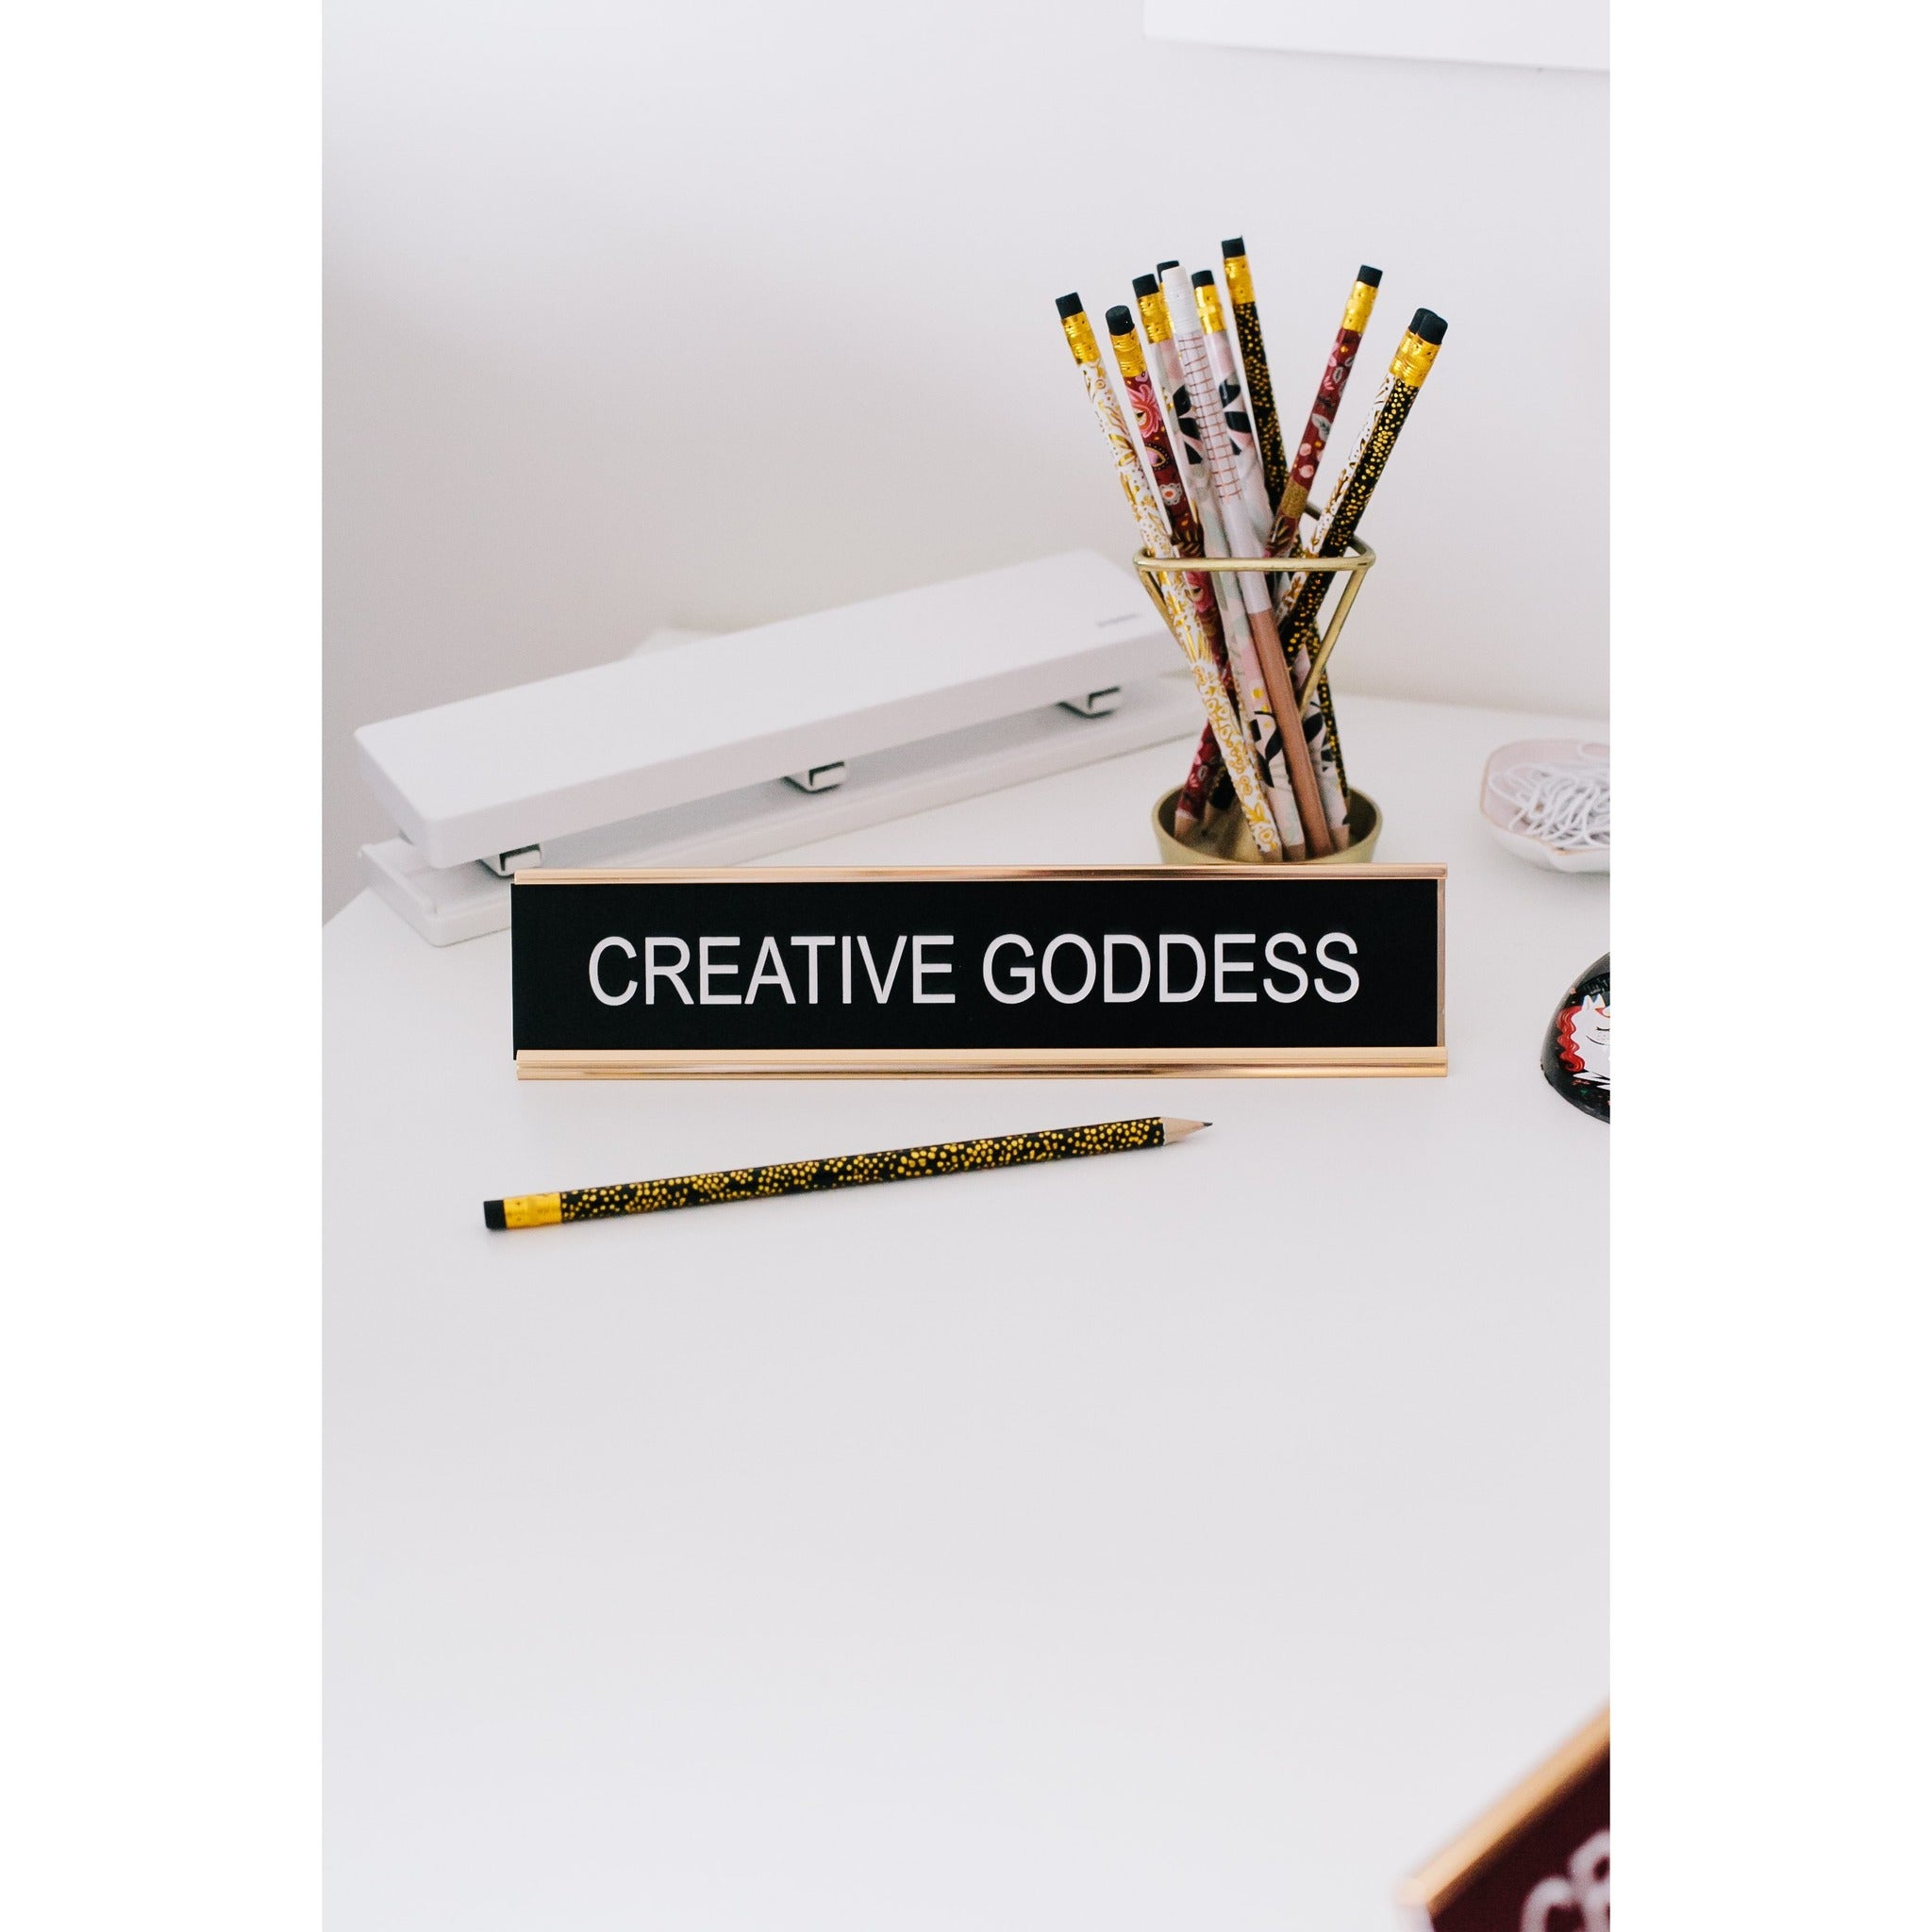 Creative Goddess Funny Desk Sign